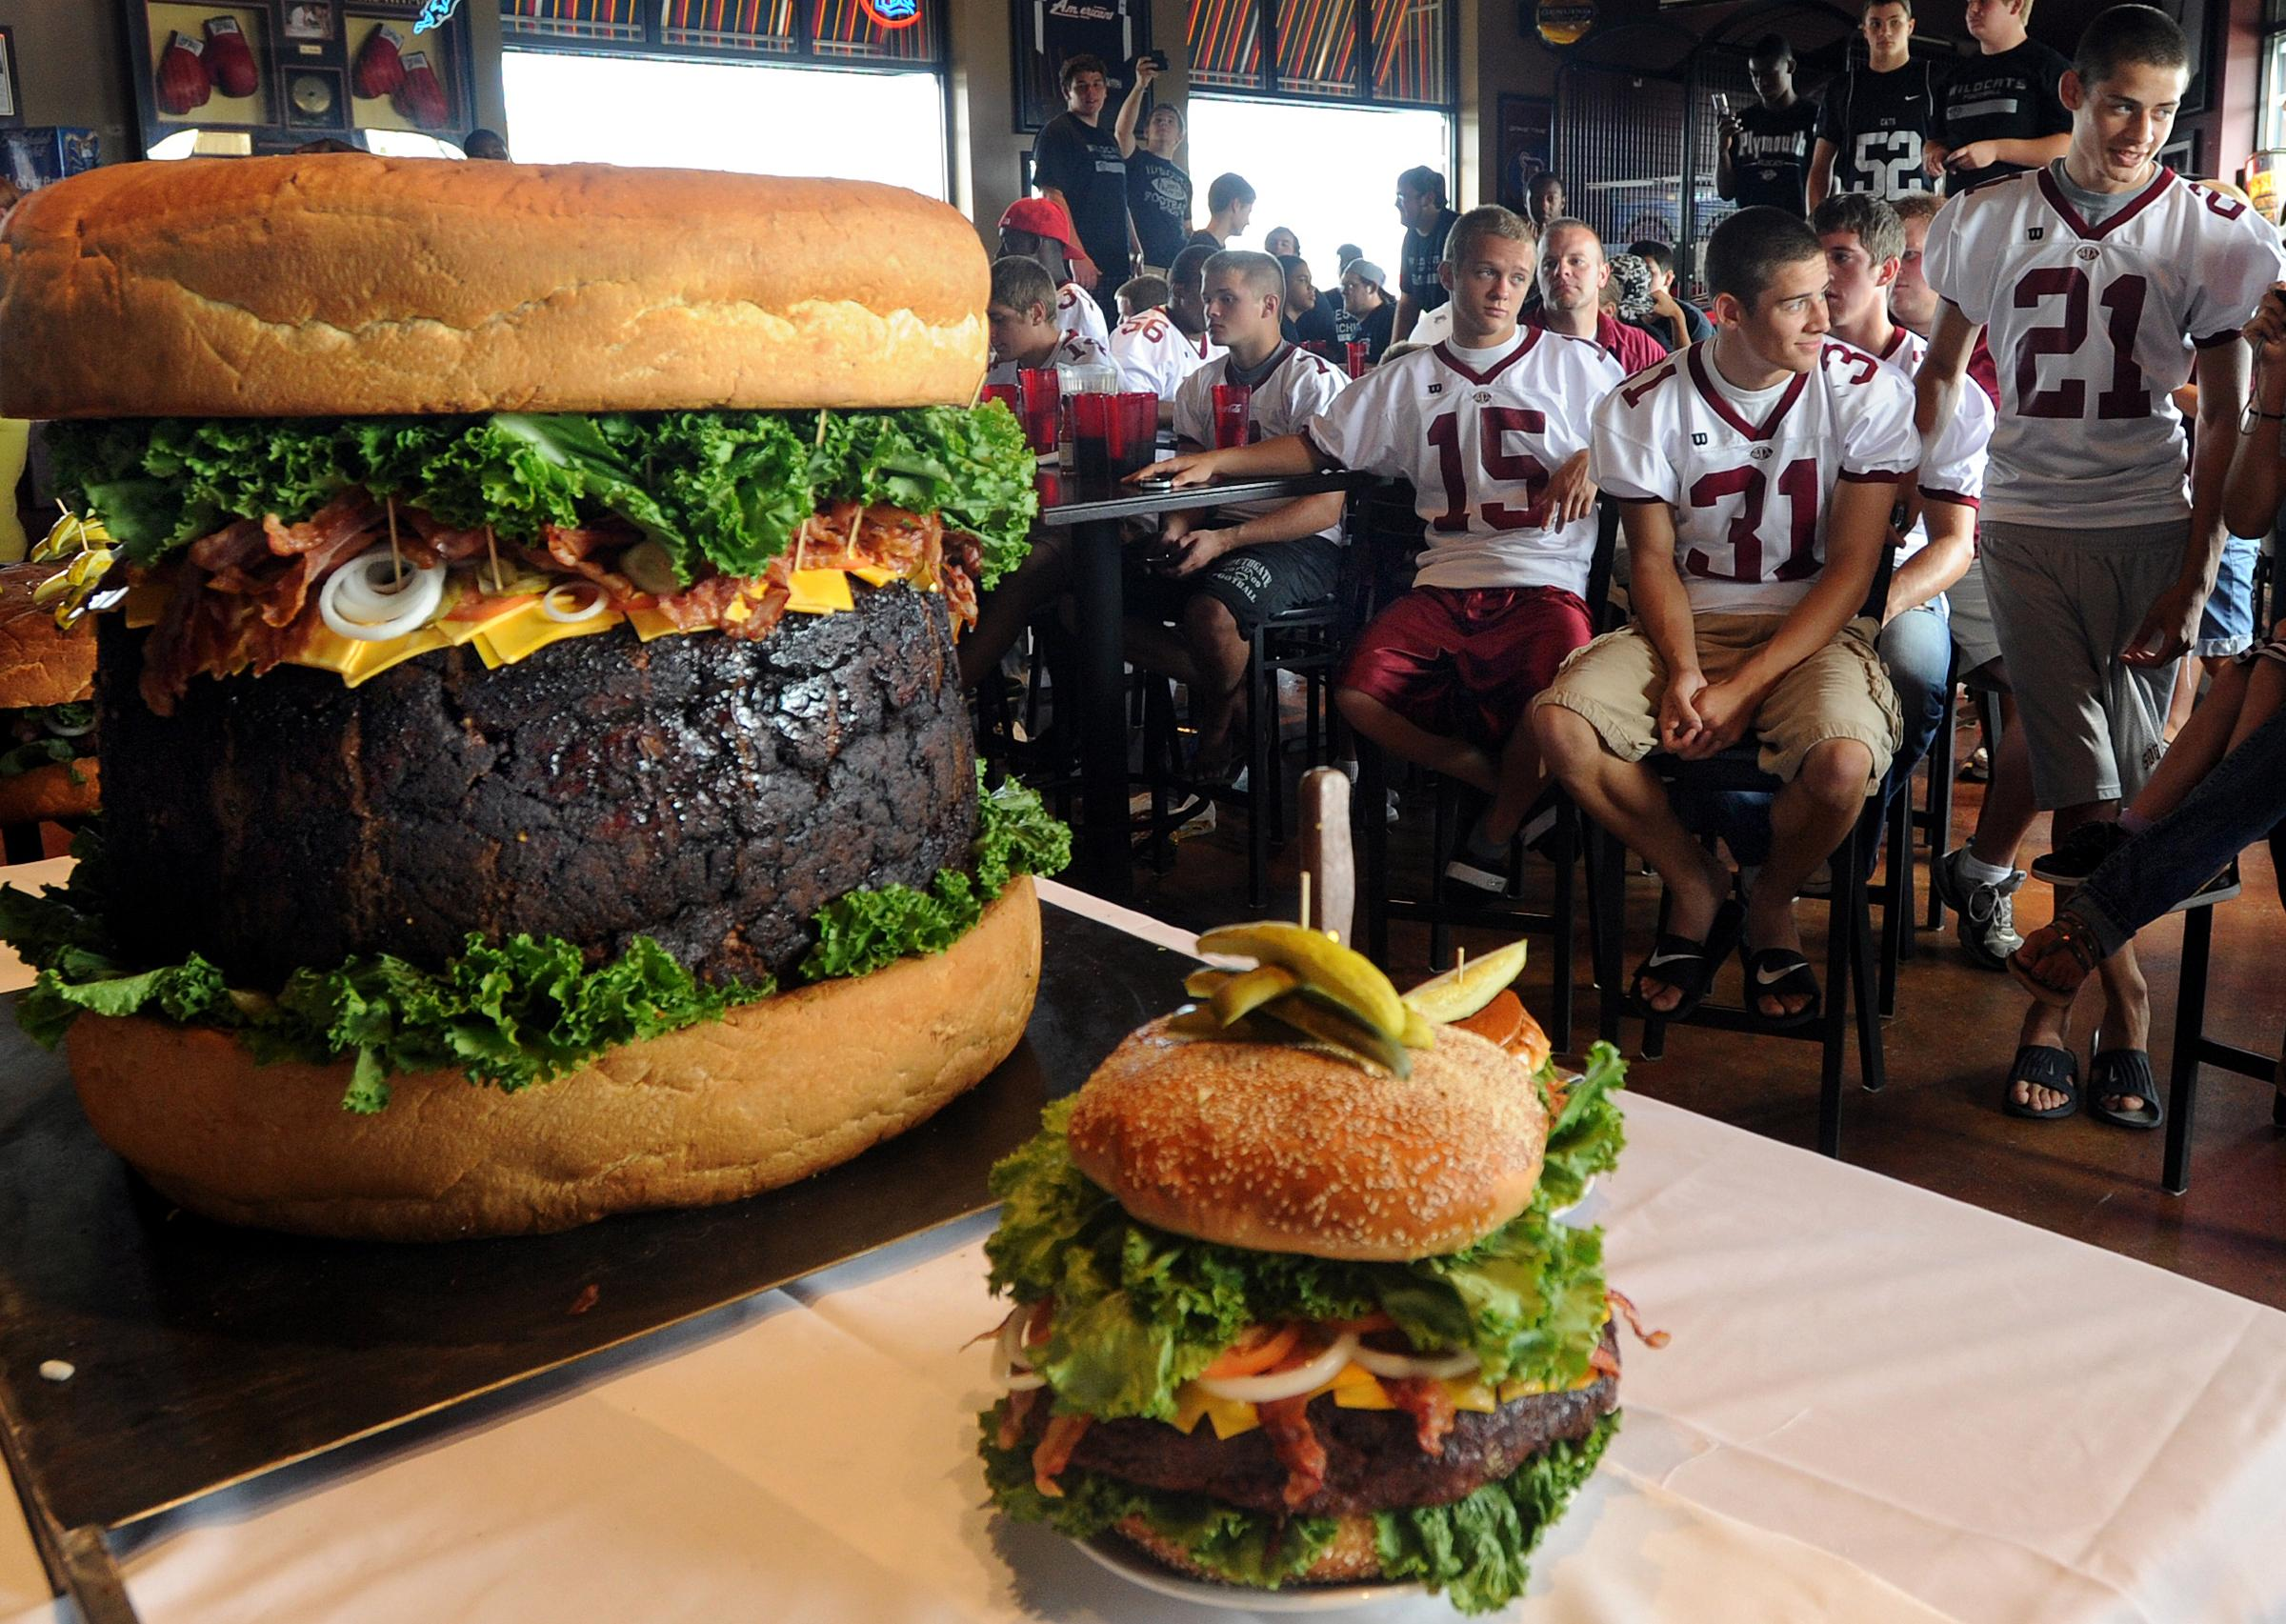 A member of the Southgate Anderson High School football team attempts to eat his share of a 300-pound hamburger at Mallie's Sports Bar & Grill. (Photo by Dave Chapman)